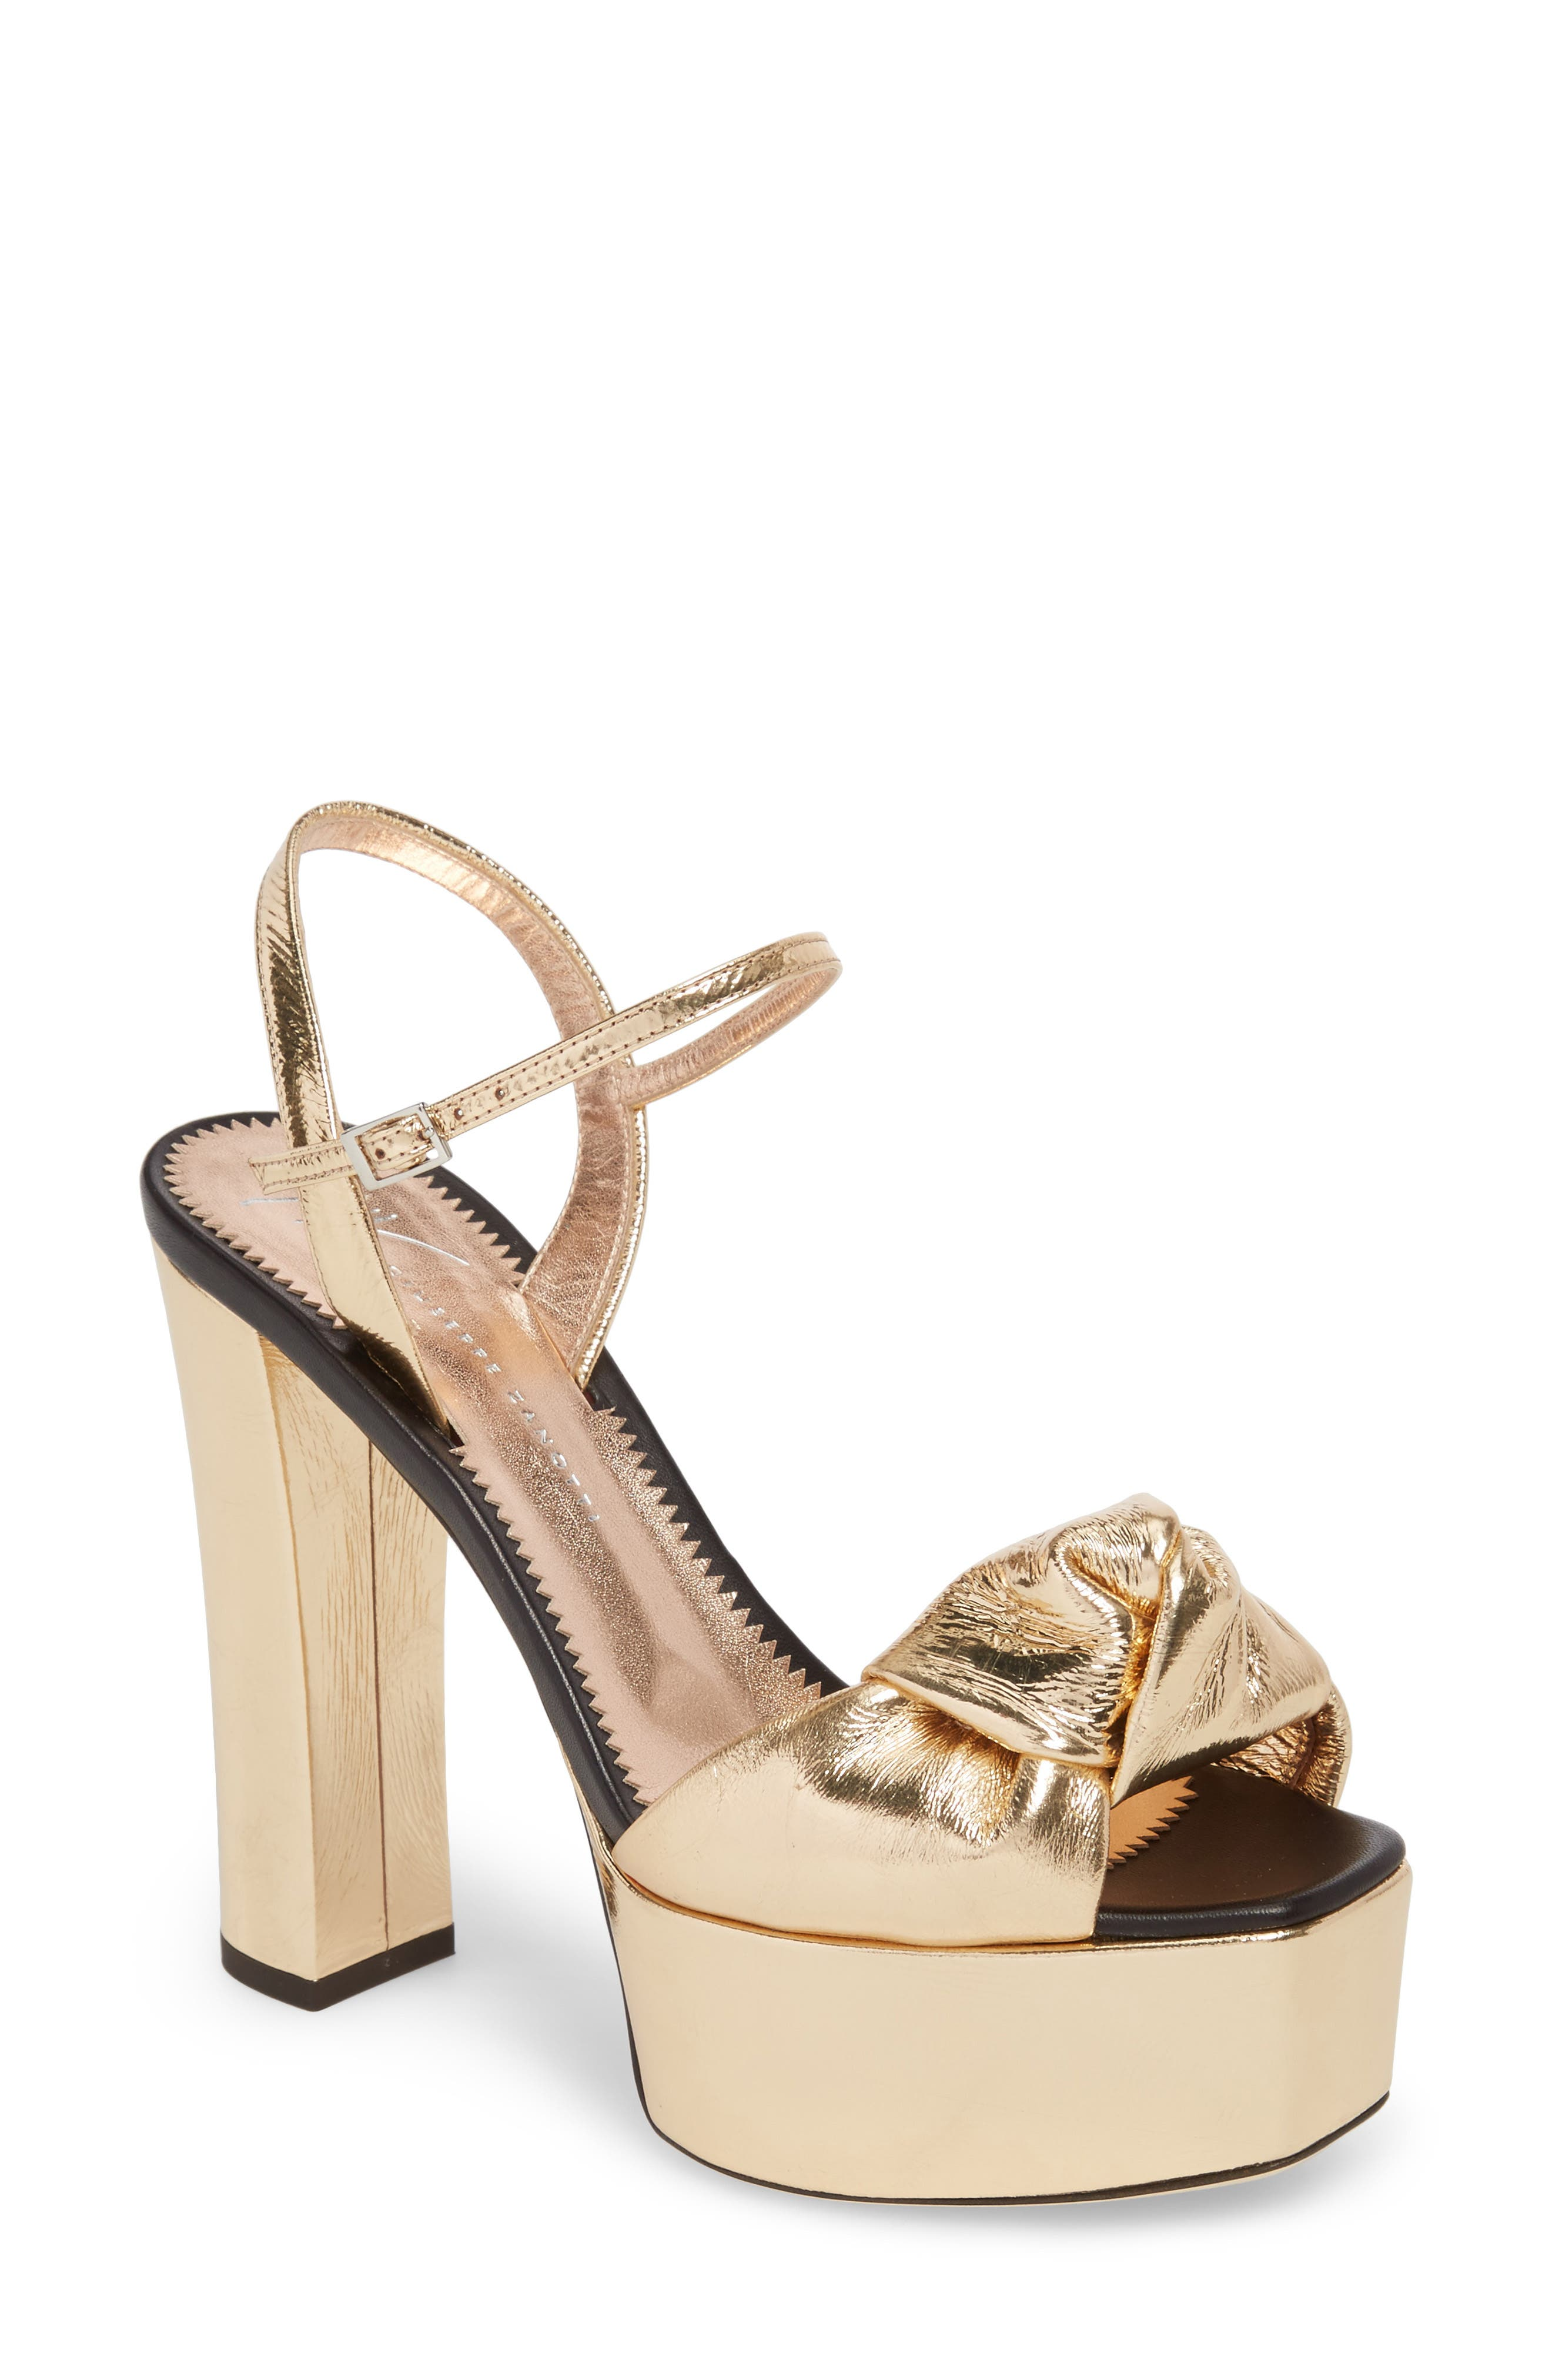 Lavinia Knot Sandal,                             Main thumbnail 1, color,                             Rose Gold